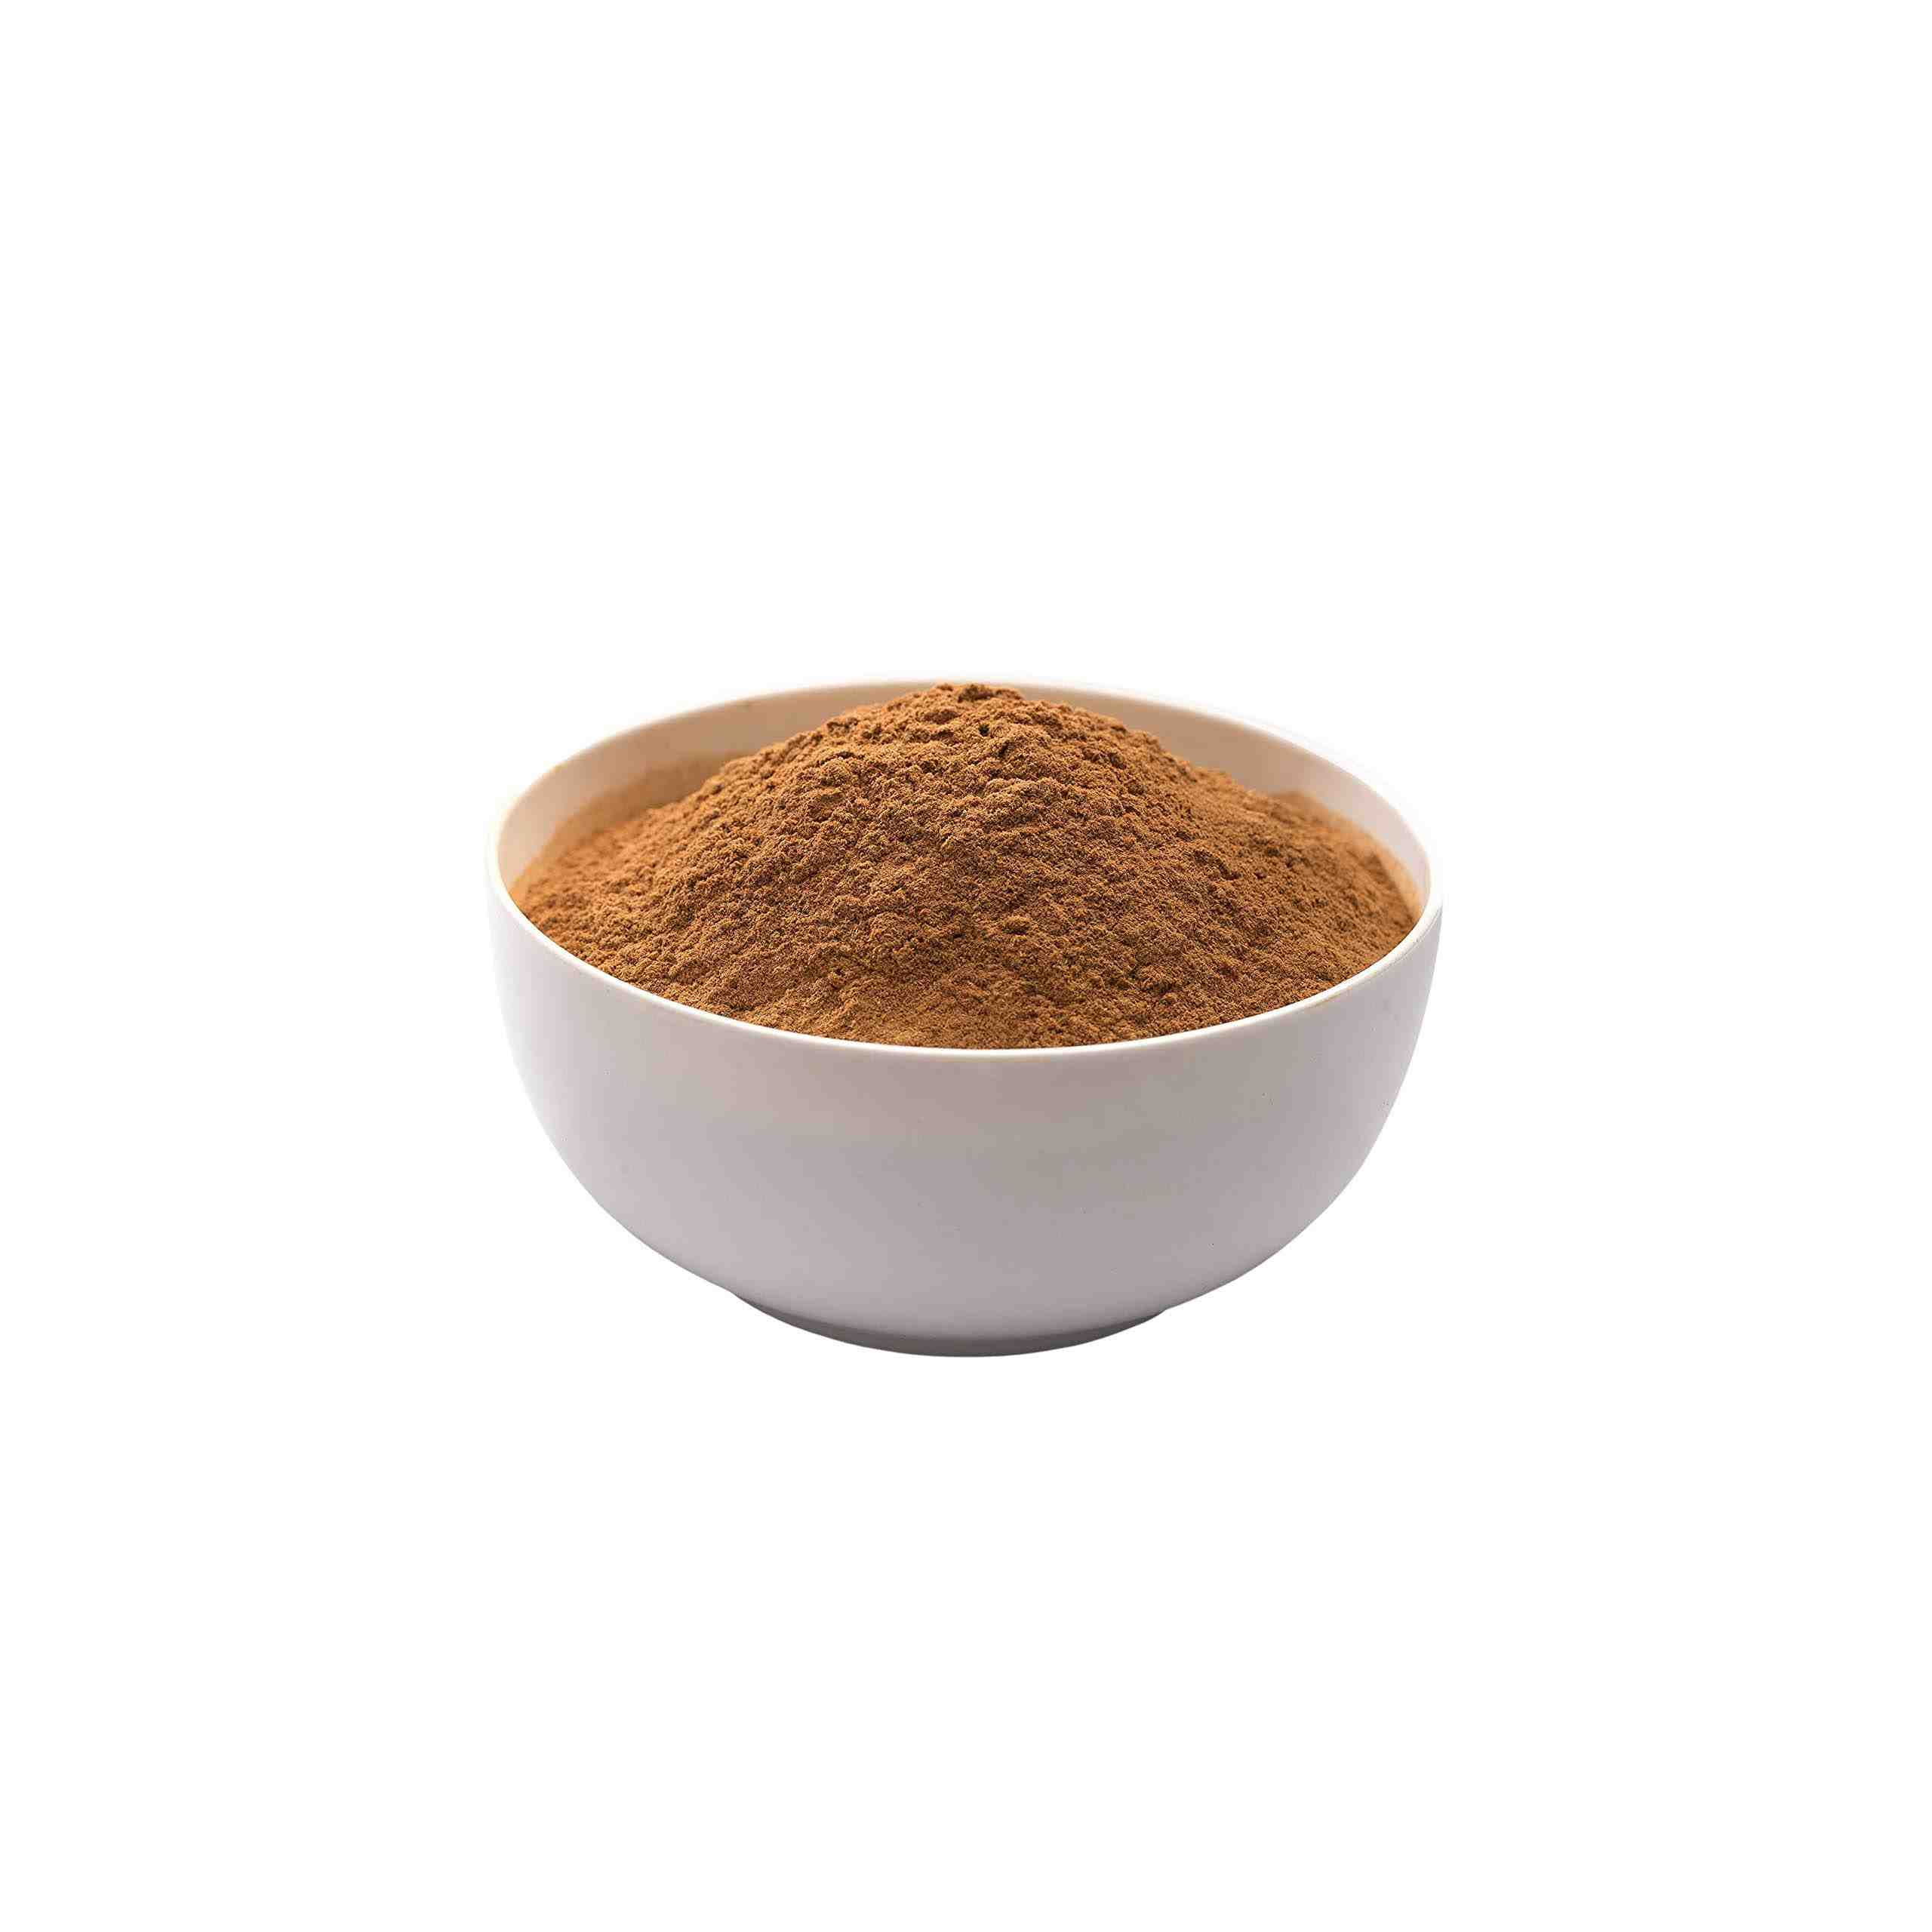 Seeds and Hands Rare Indian Cinnamon/Dalchini Powder [100% Pure and Natural] Pack of 2 x 50g (100g)